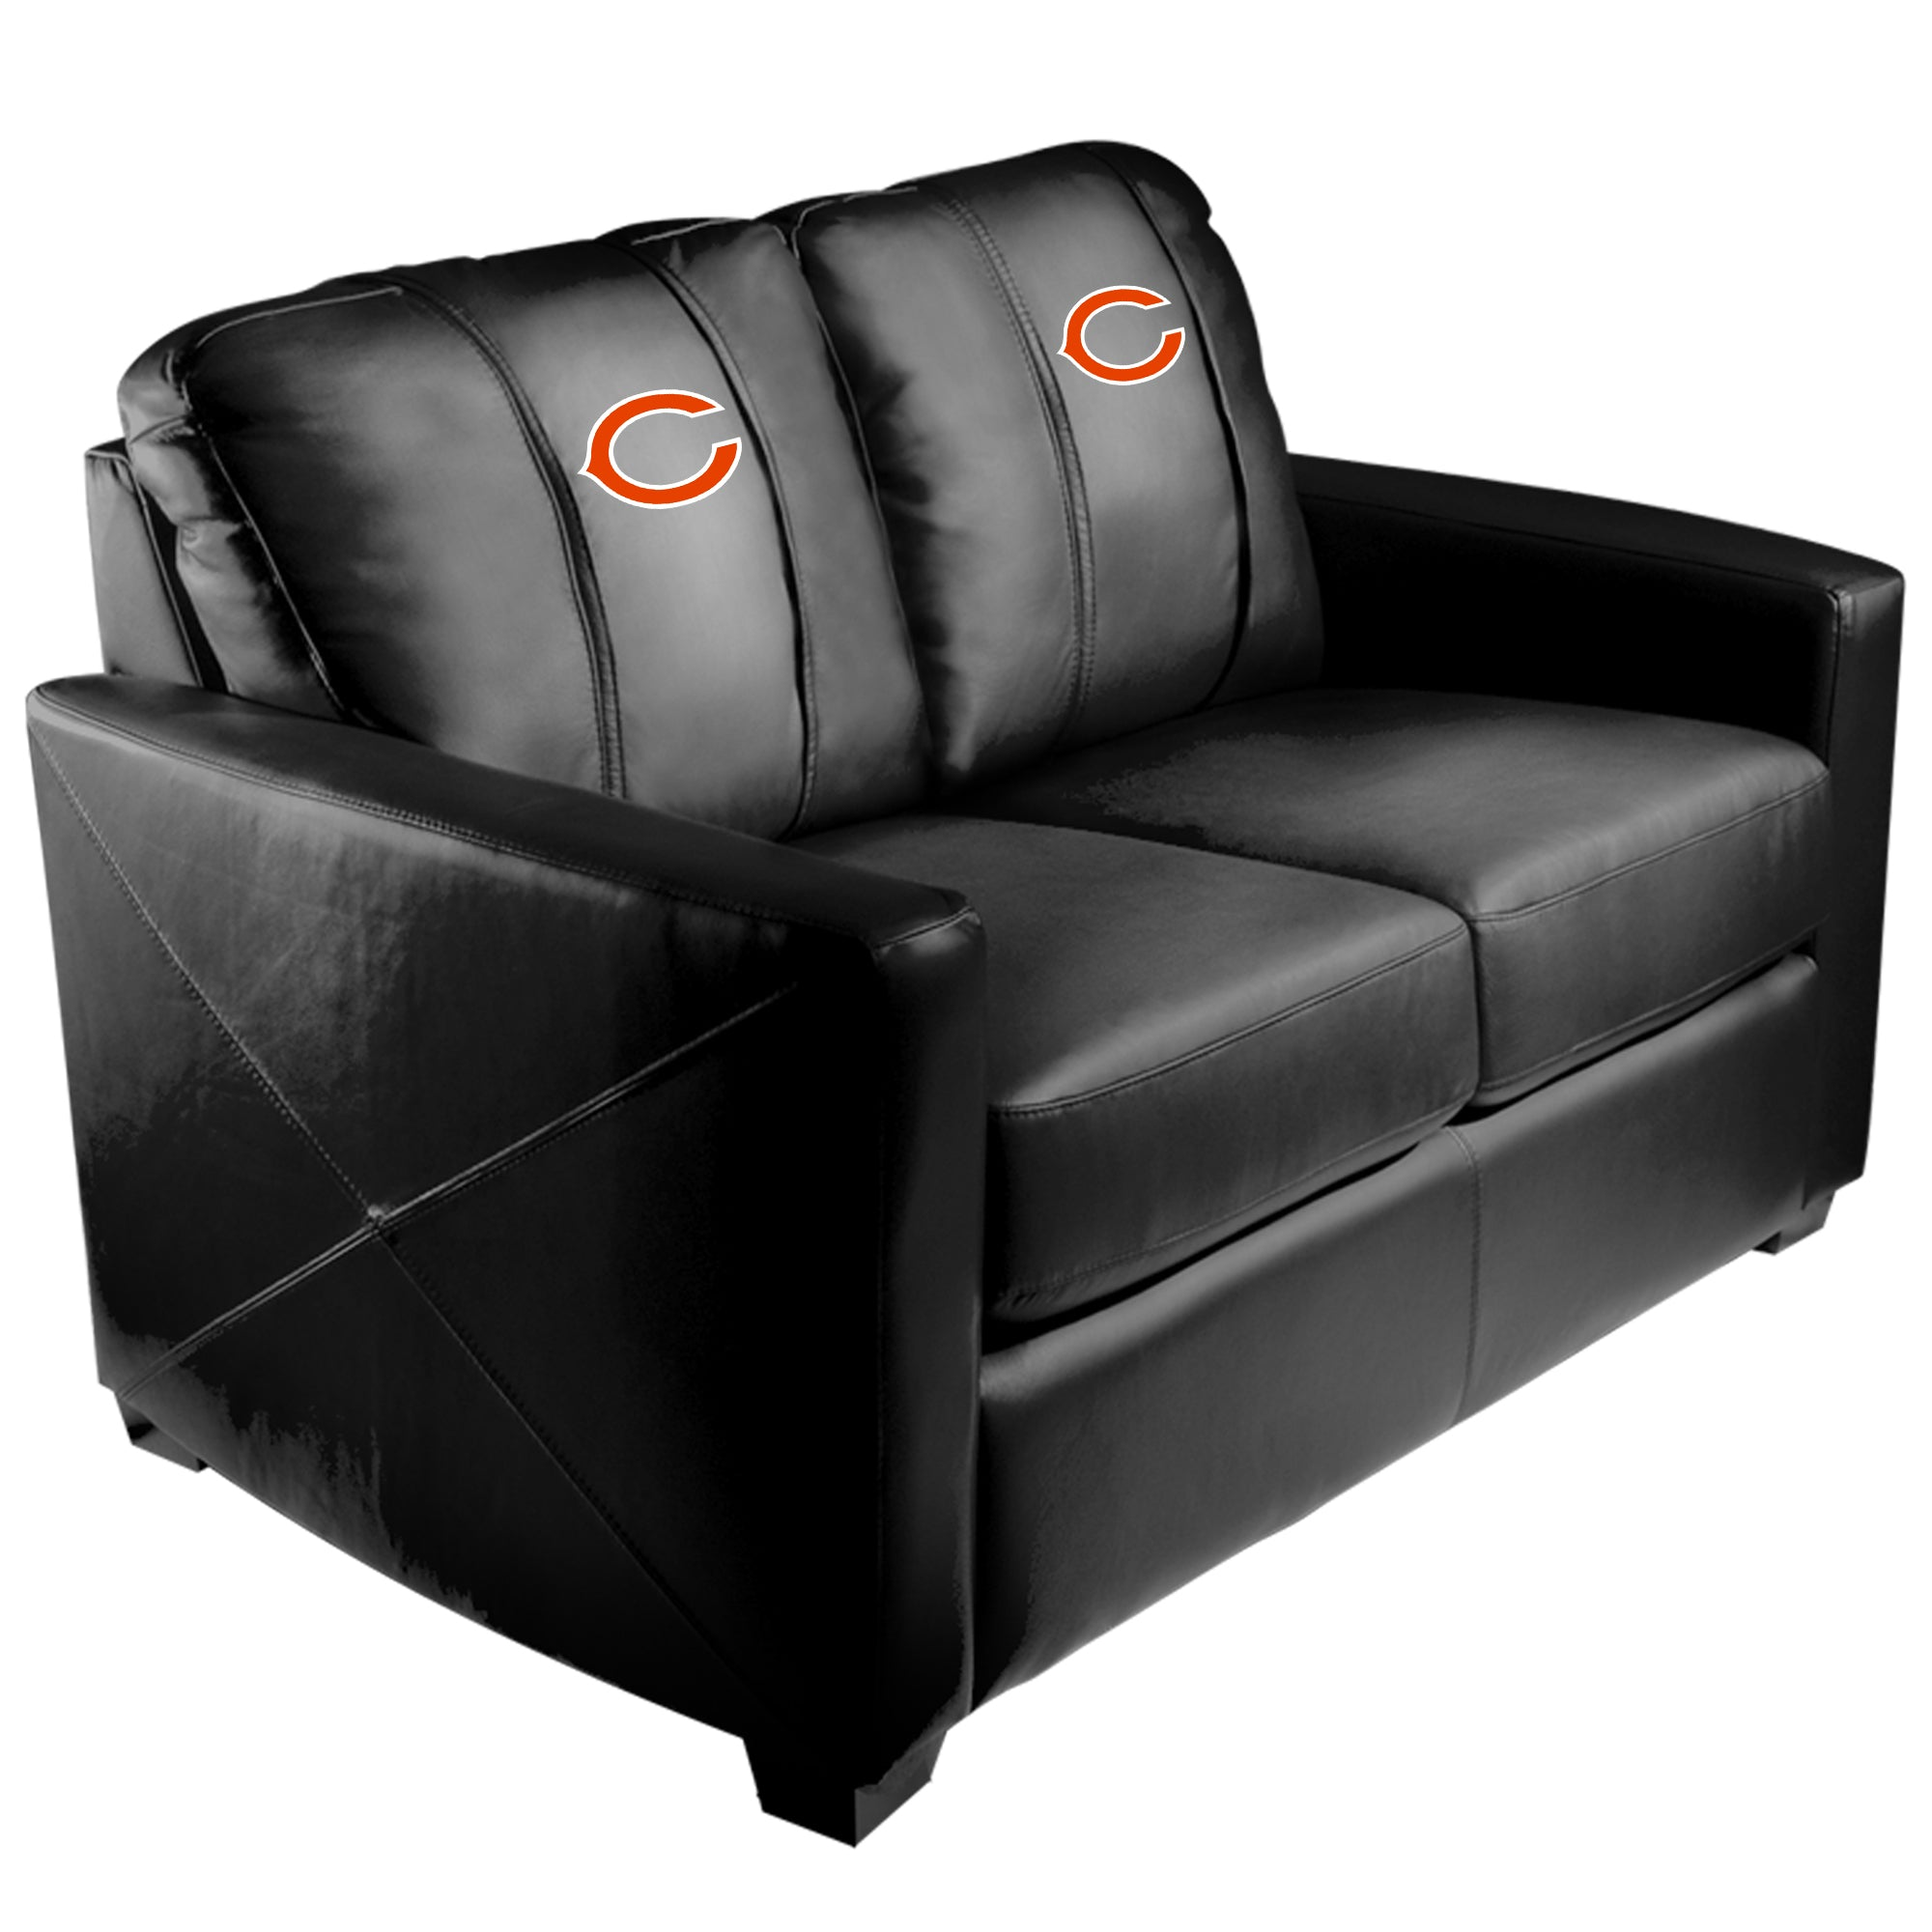 Silver Loveseat with  Chicago Bears Primary Logo